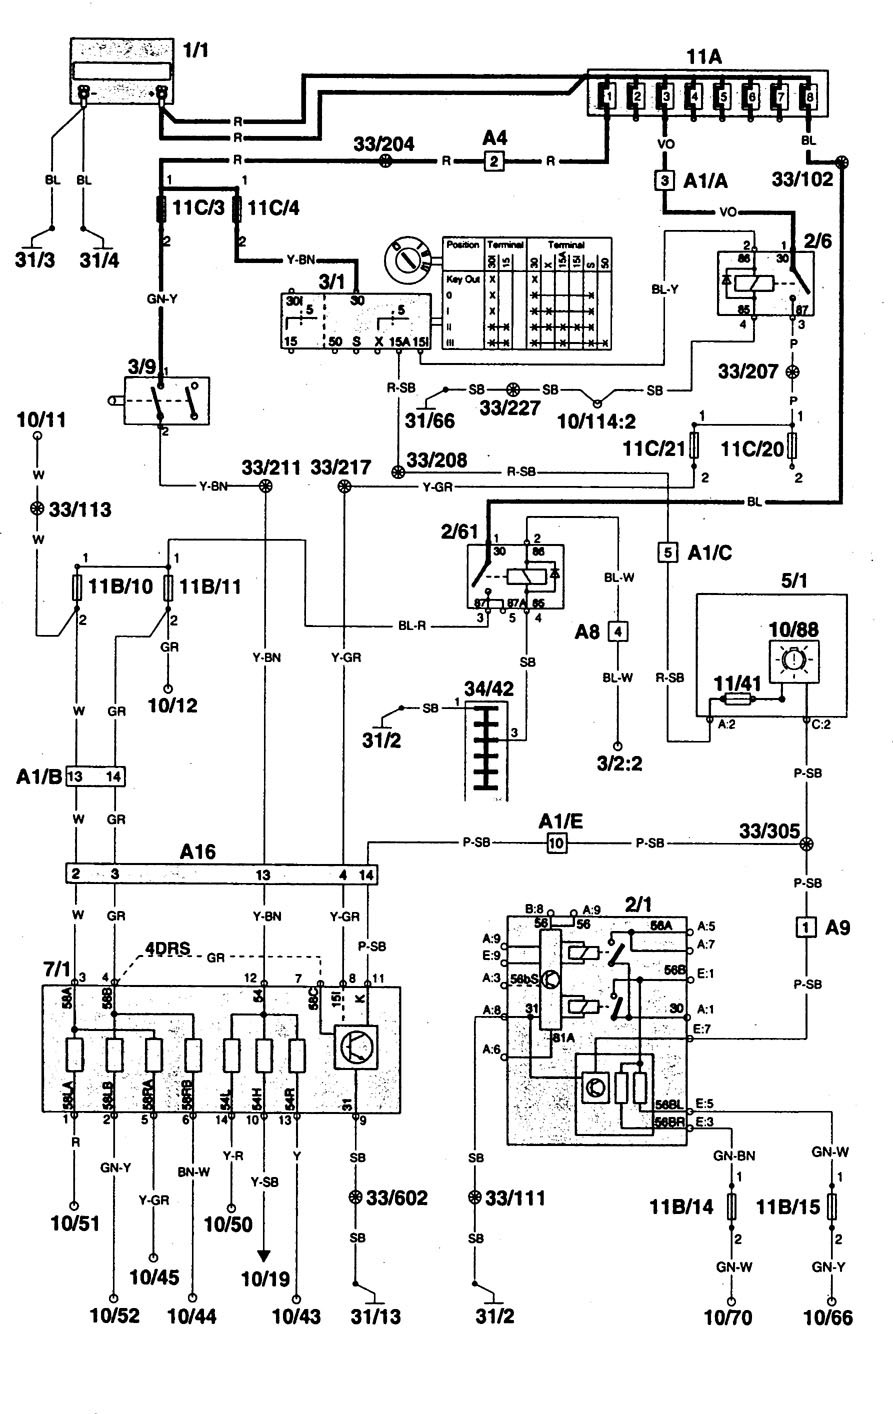 colorful volvo wiring diagrams sketch best images for wiring rh oursweetbakeshop info Volvo L90 Volvo Wheel Loader